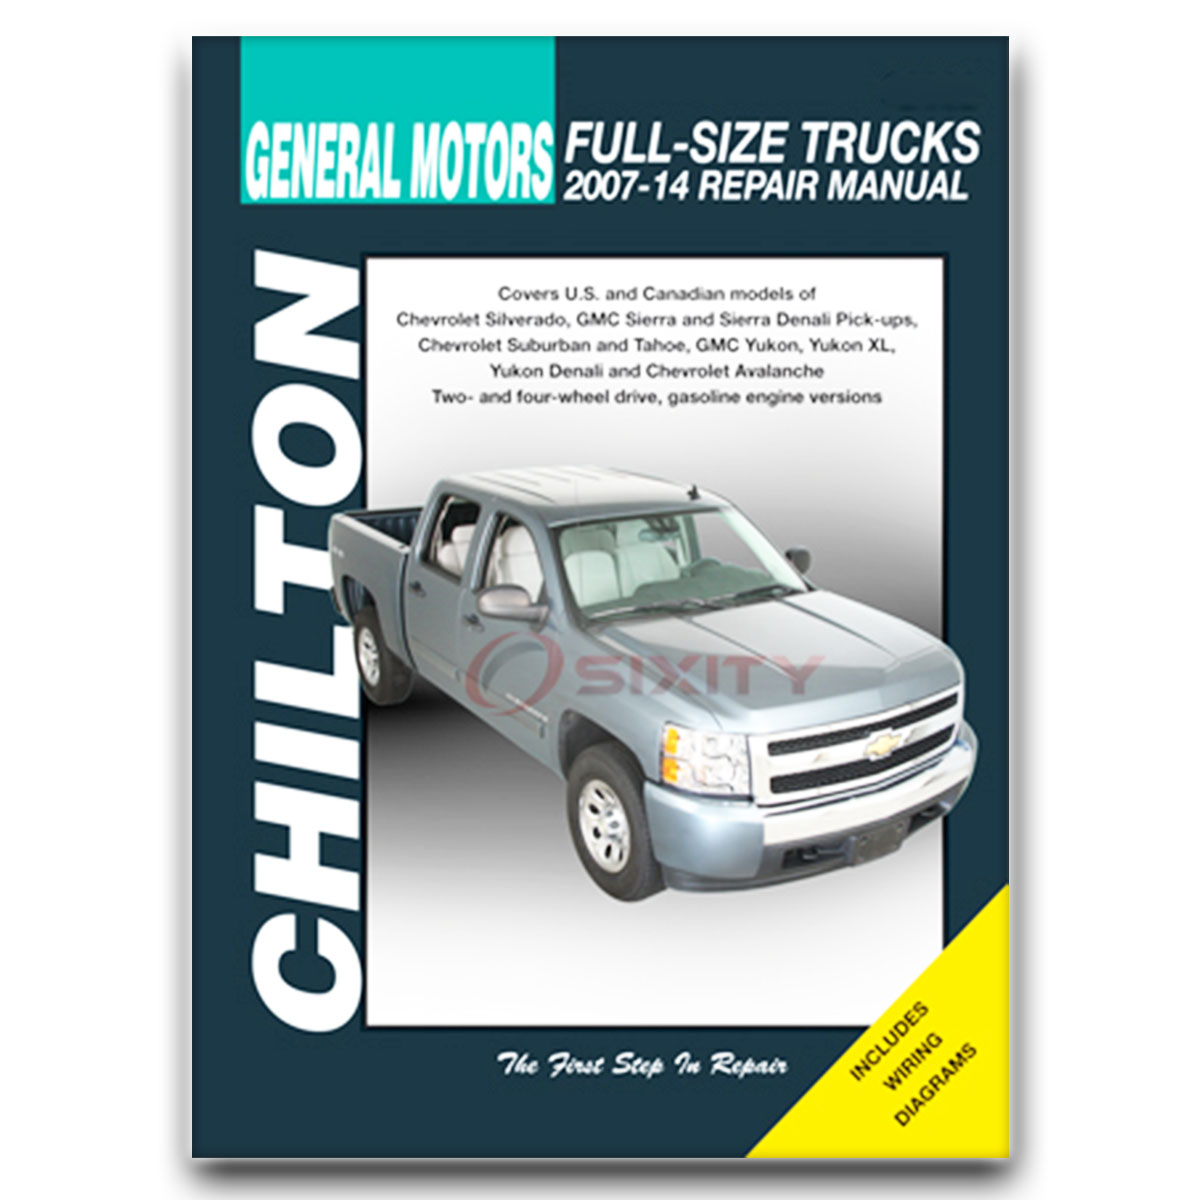 ltz service manual rh ltz service manual dohbots de 2007 chevrolet silverado owners manual 2007 chevrolet silverado owners manual